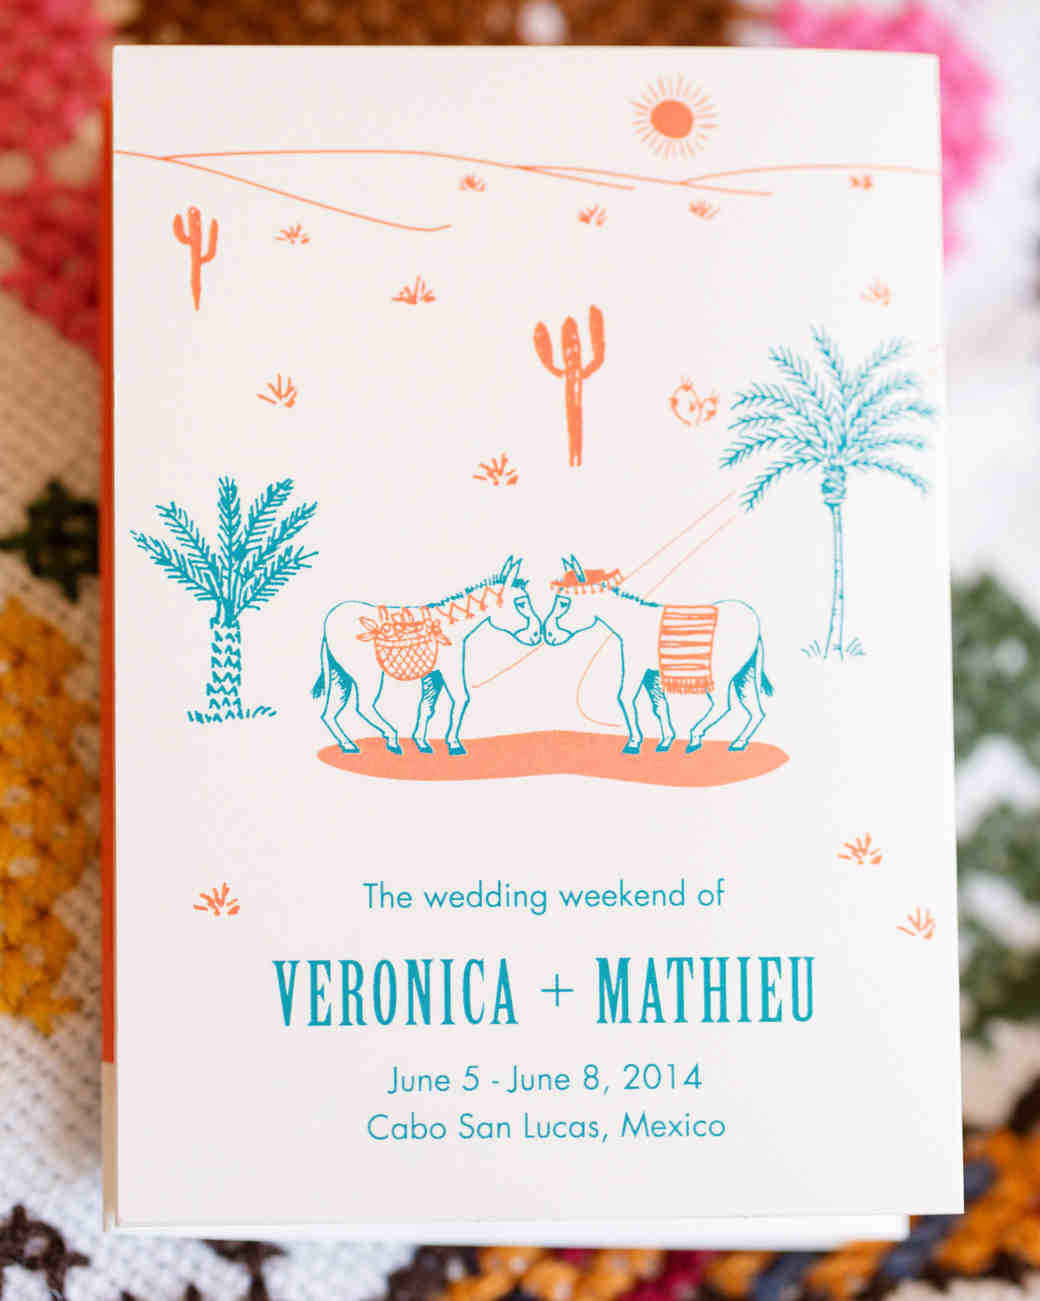 veronica-mathieu-wedding-invite-0626-s111501-1014.jpg